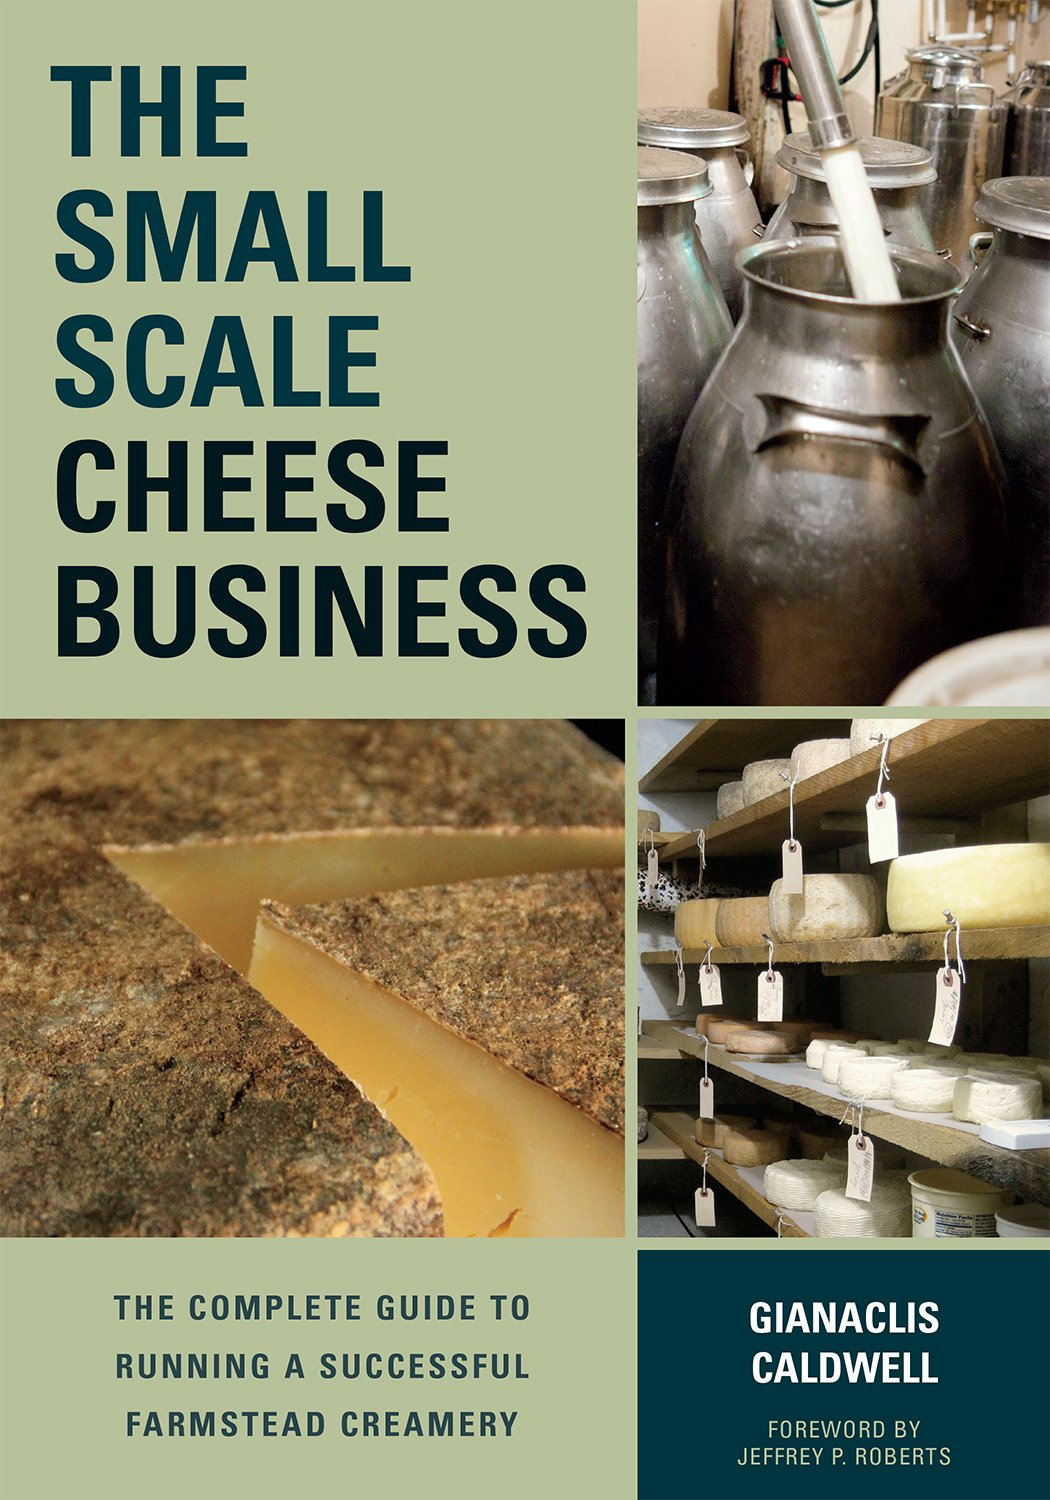 the-small-scale-cheese-business-the-complete-guide-to-running-a-successful-farmstead-creamery